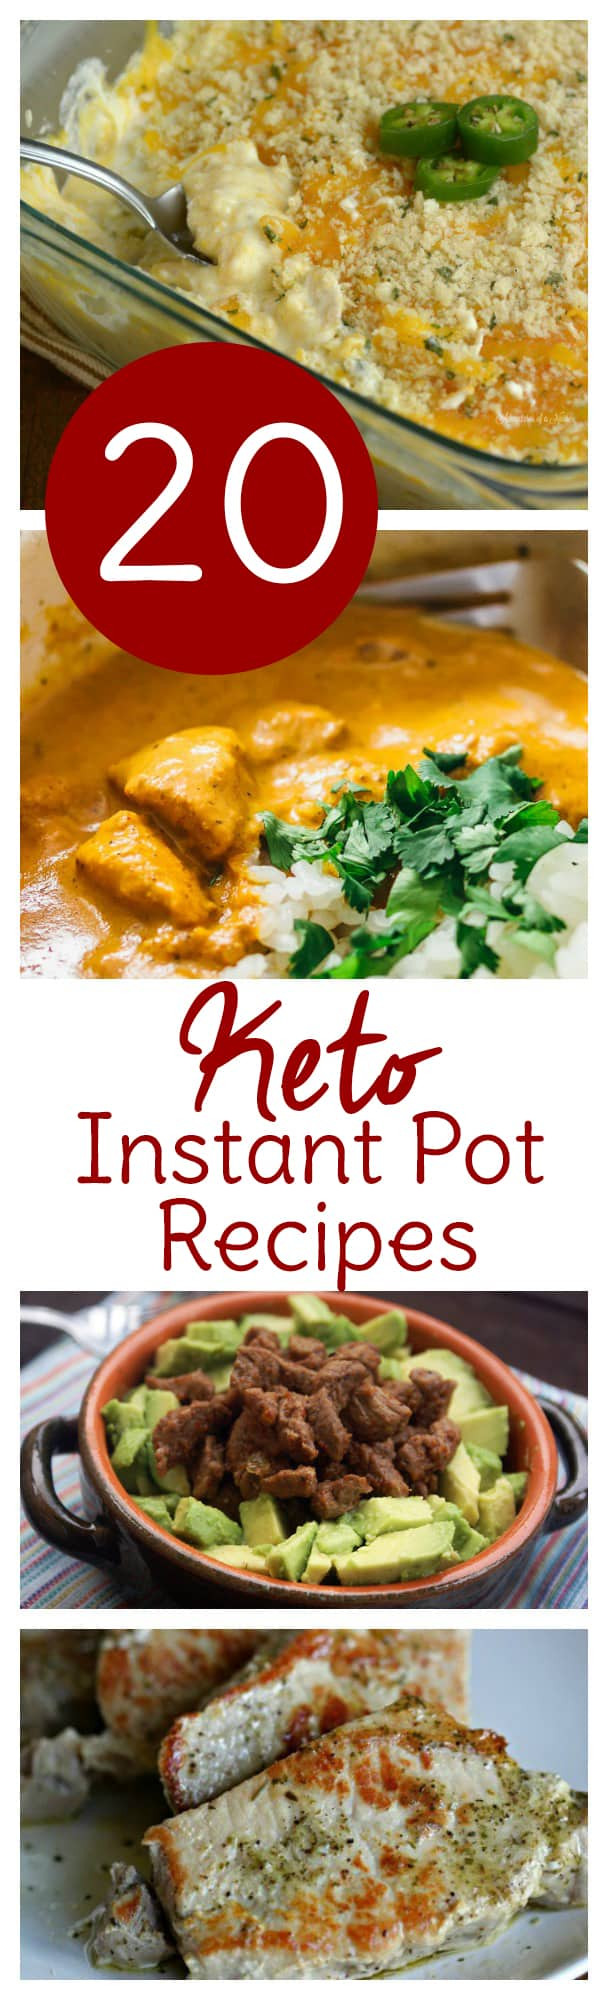 Instant Pot Low Calorie Recipes  20 Instant Pot Keto Recipes to Make This Week